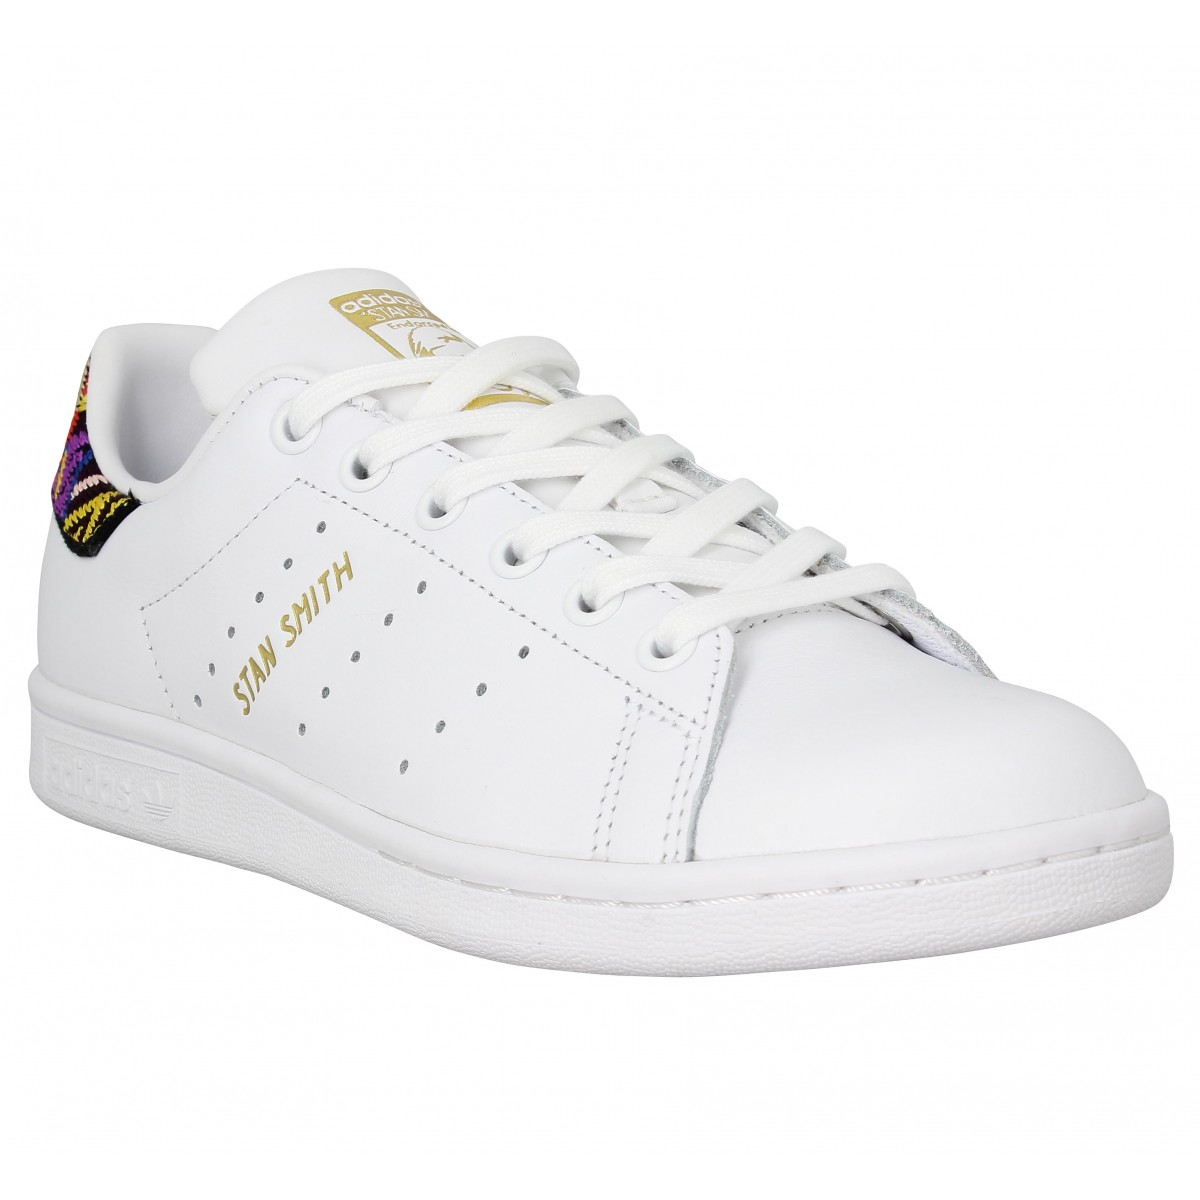 adidas stan smith x the farm company cuir femme blanc. Black Bedroom Furniture Sets. Home Design Ideas